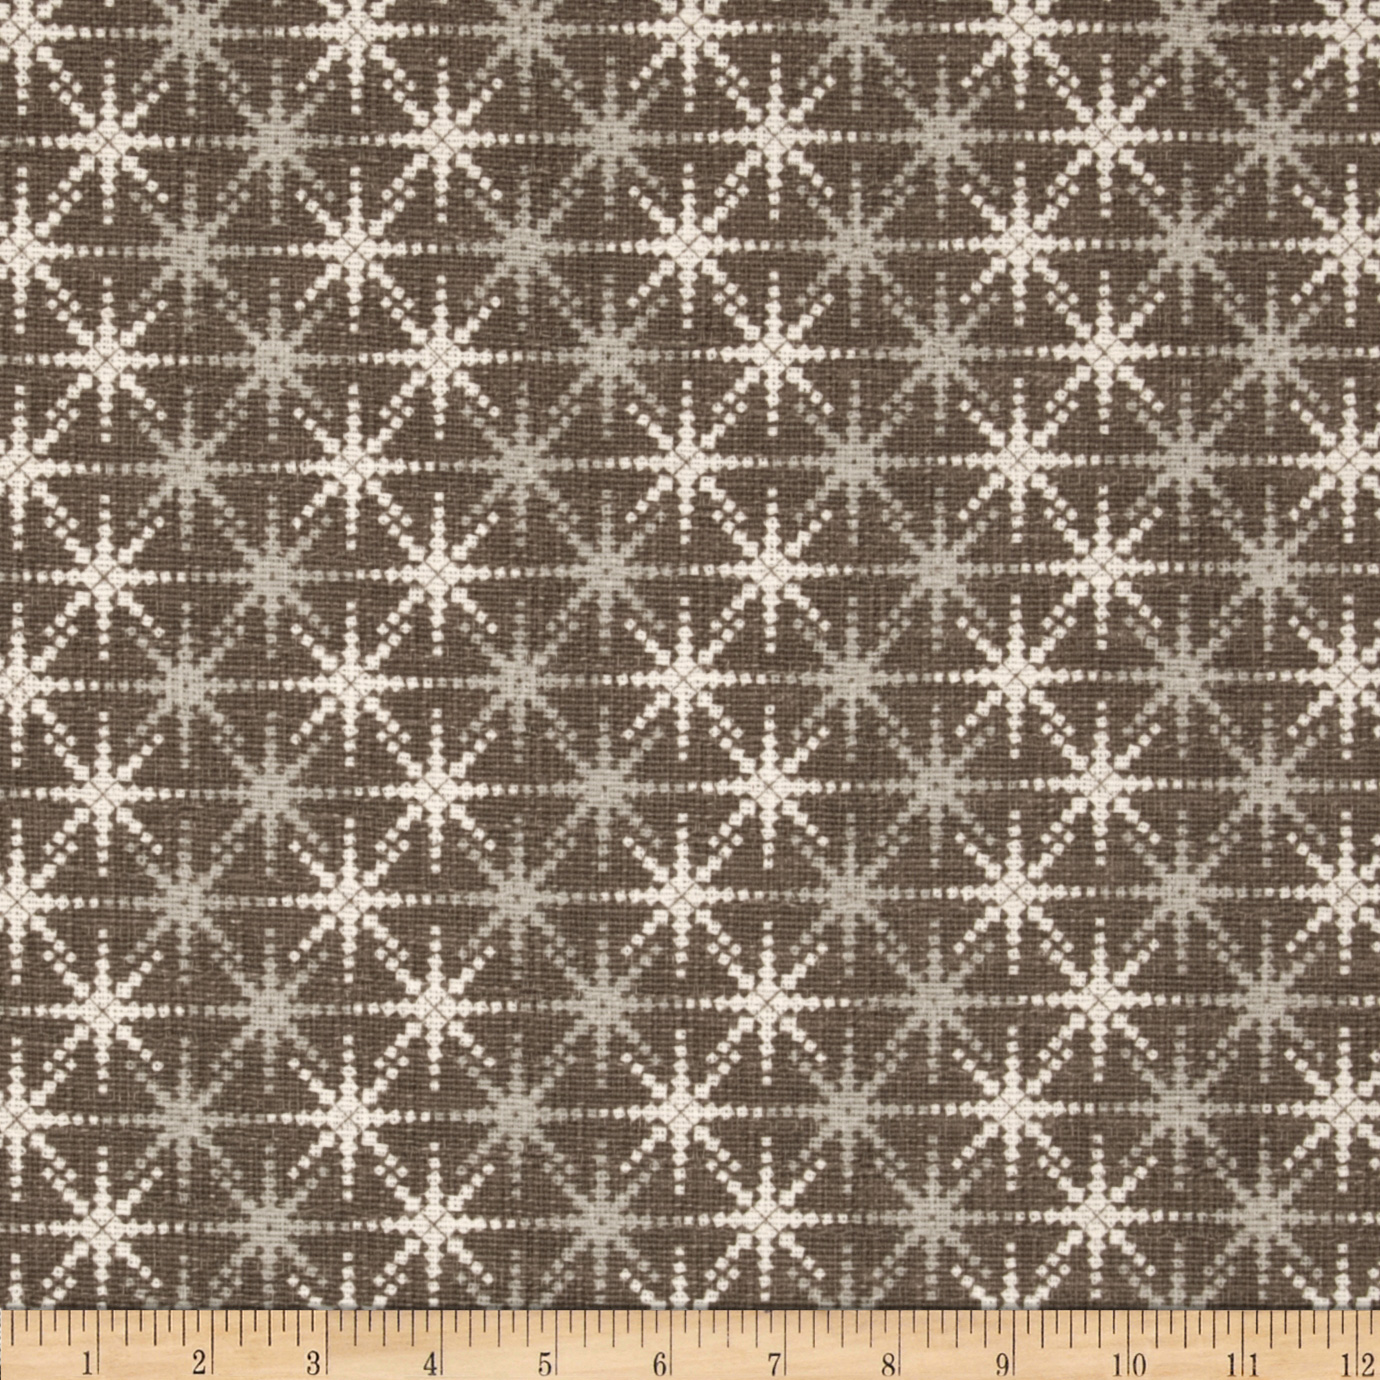 Premier Prints Cass Birch Brick Fabric